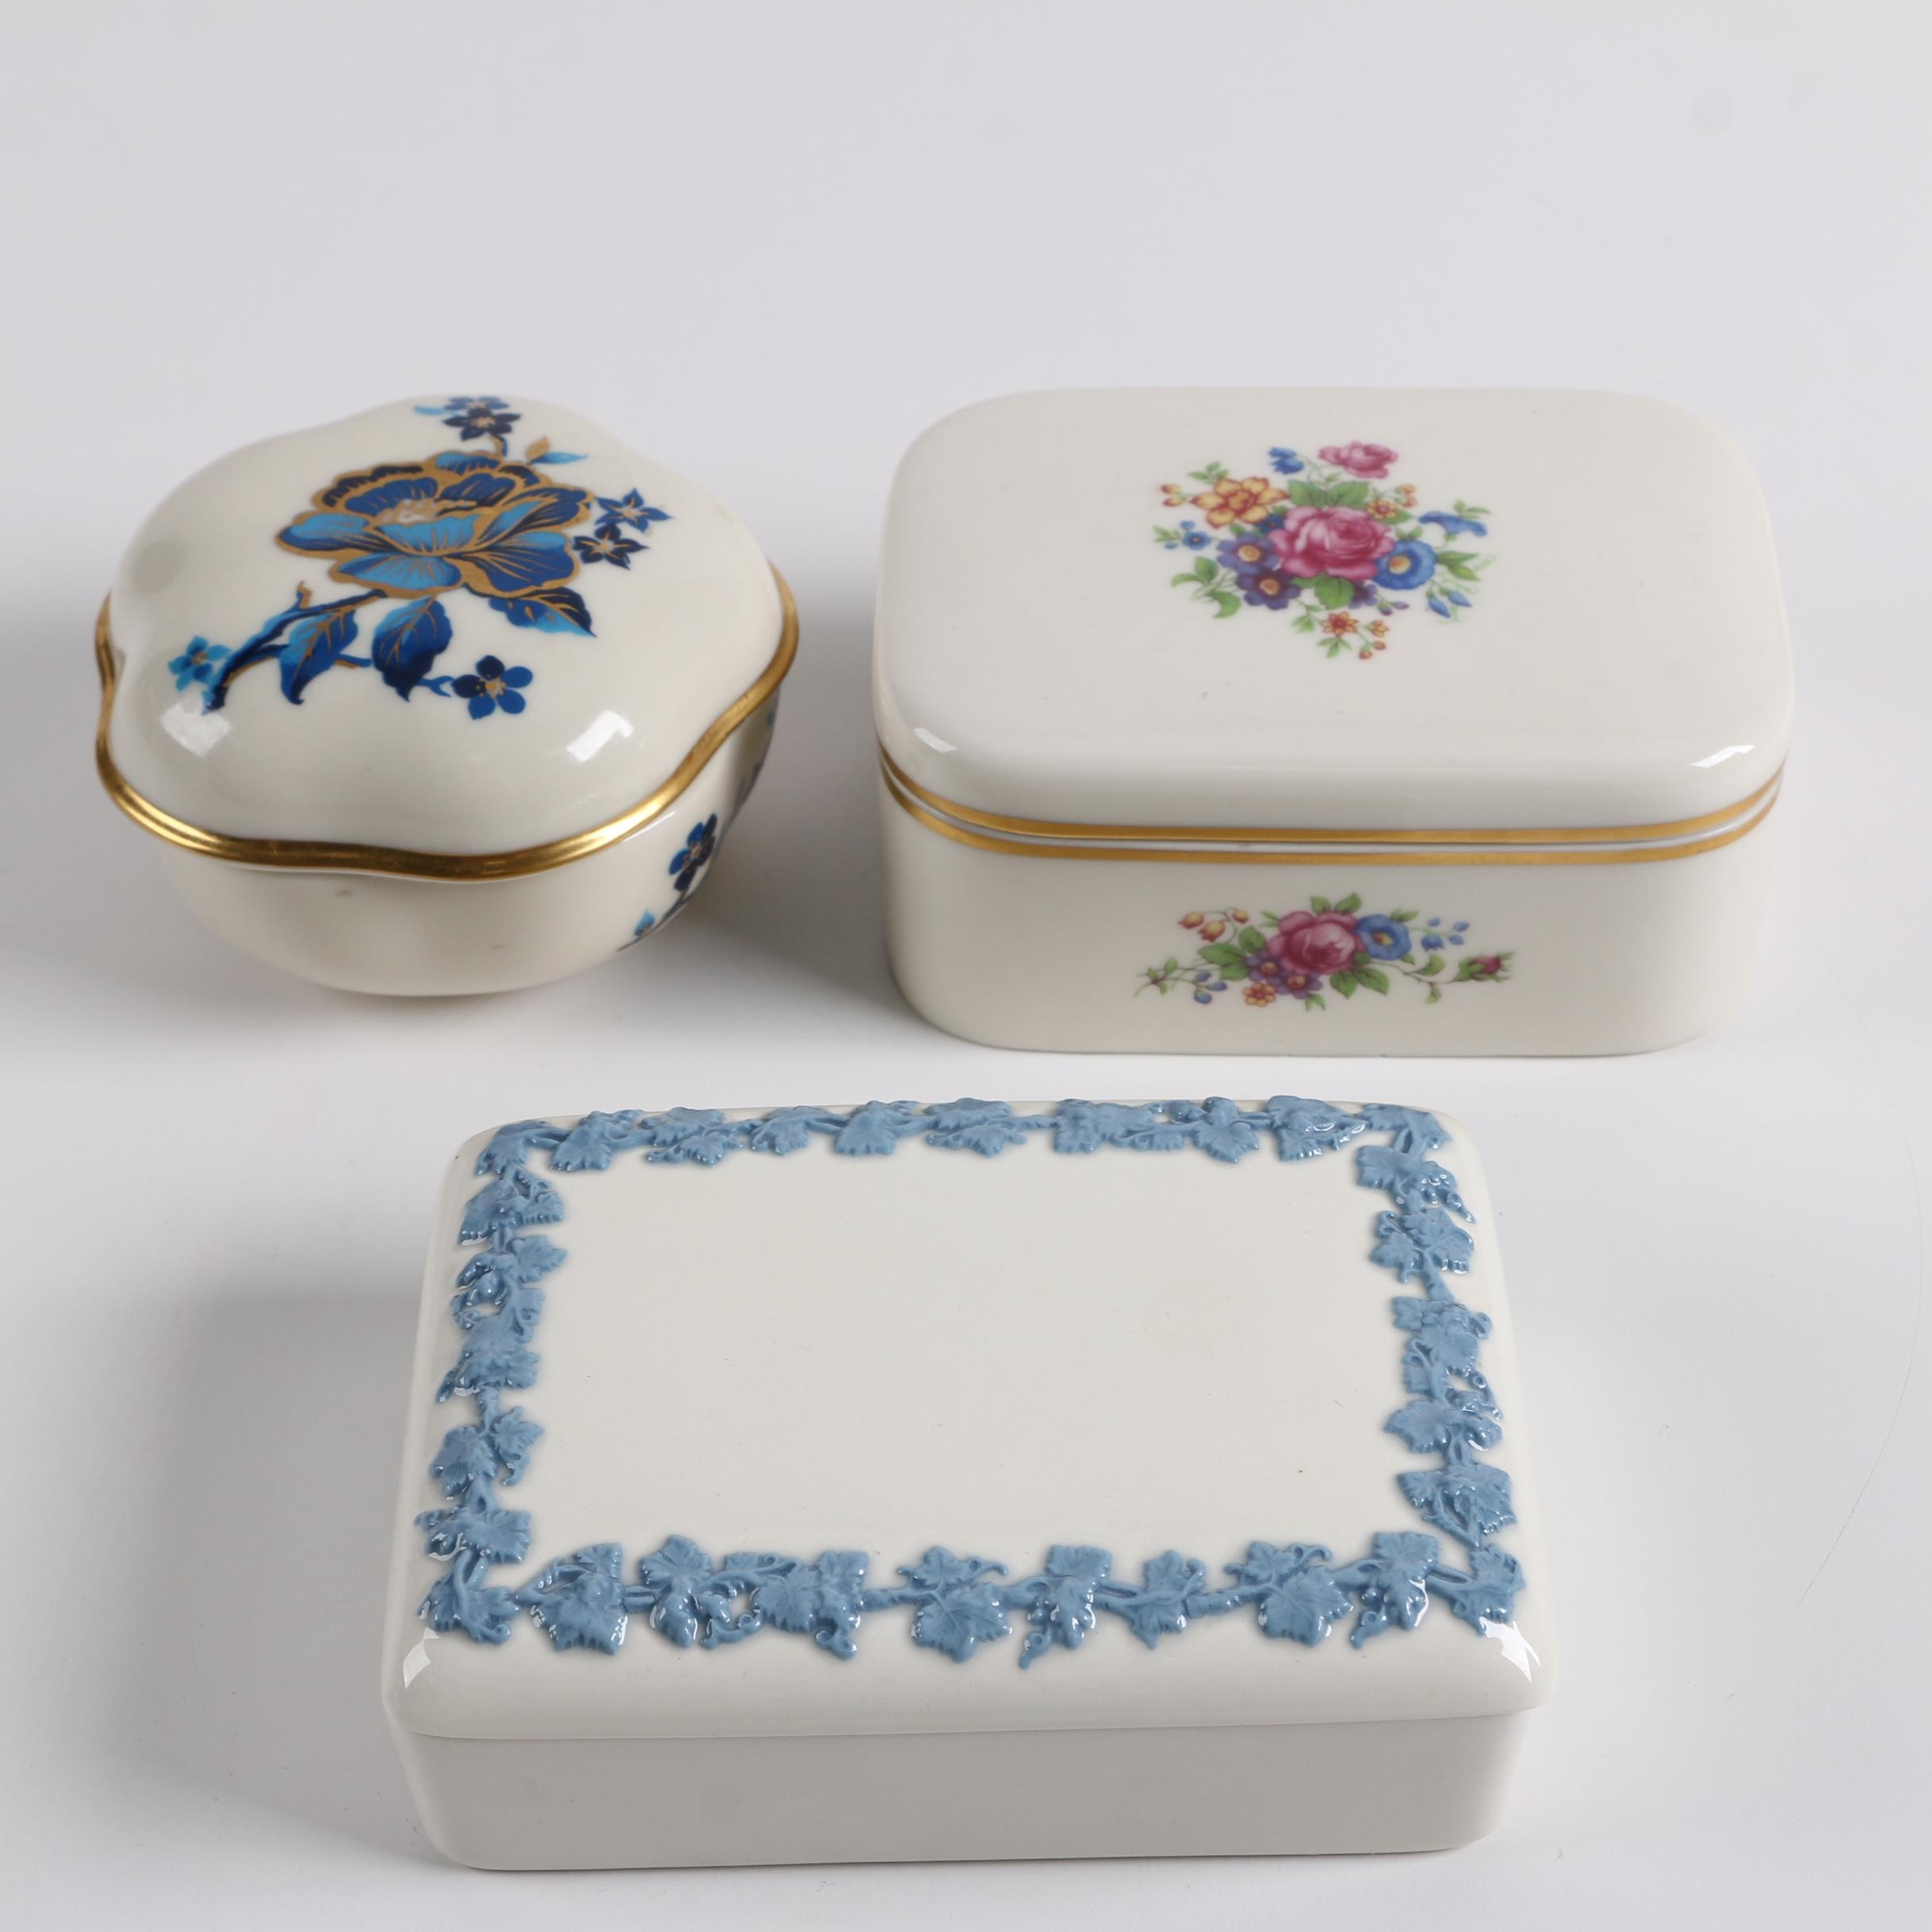 """Wedgwood Queen's Ware and Lenox """"Pagoda"""" Porcelain Trinket Boxes"""